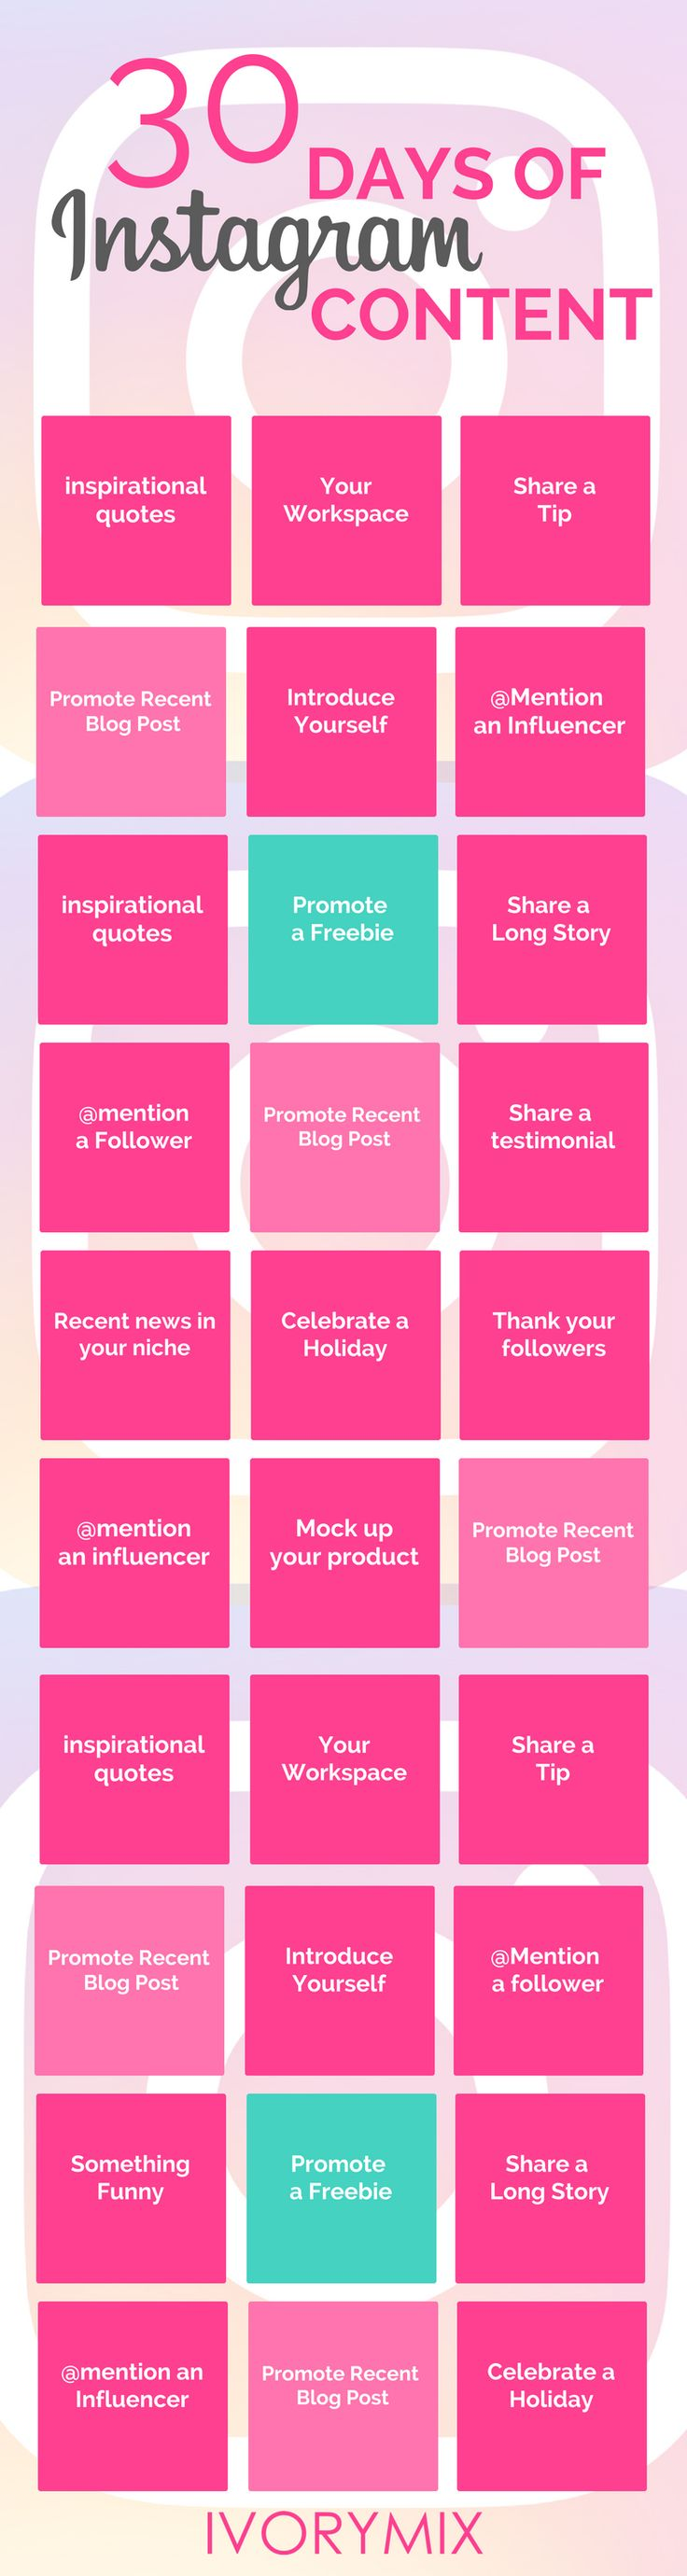 What-to-Post-on-Instagram-Here%E2%80%99s-30-Days%E2%80%99-Worth-of-Ideas-1.jpg